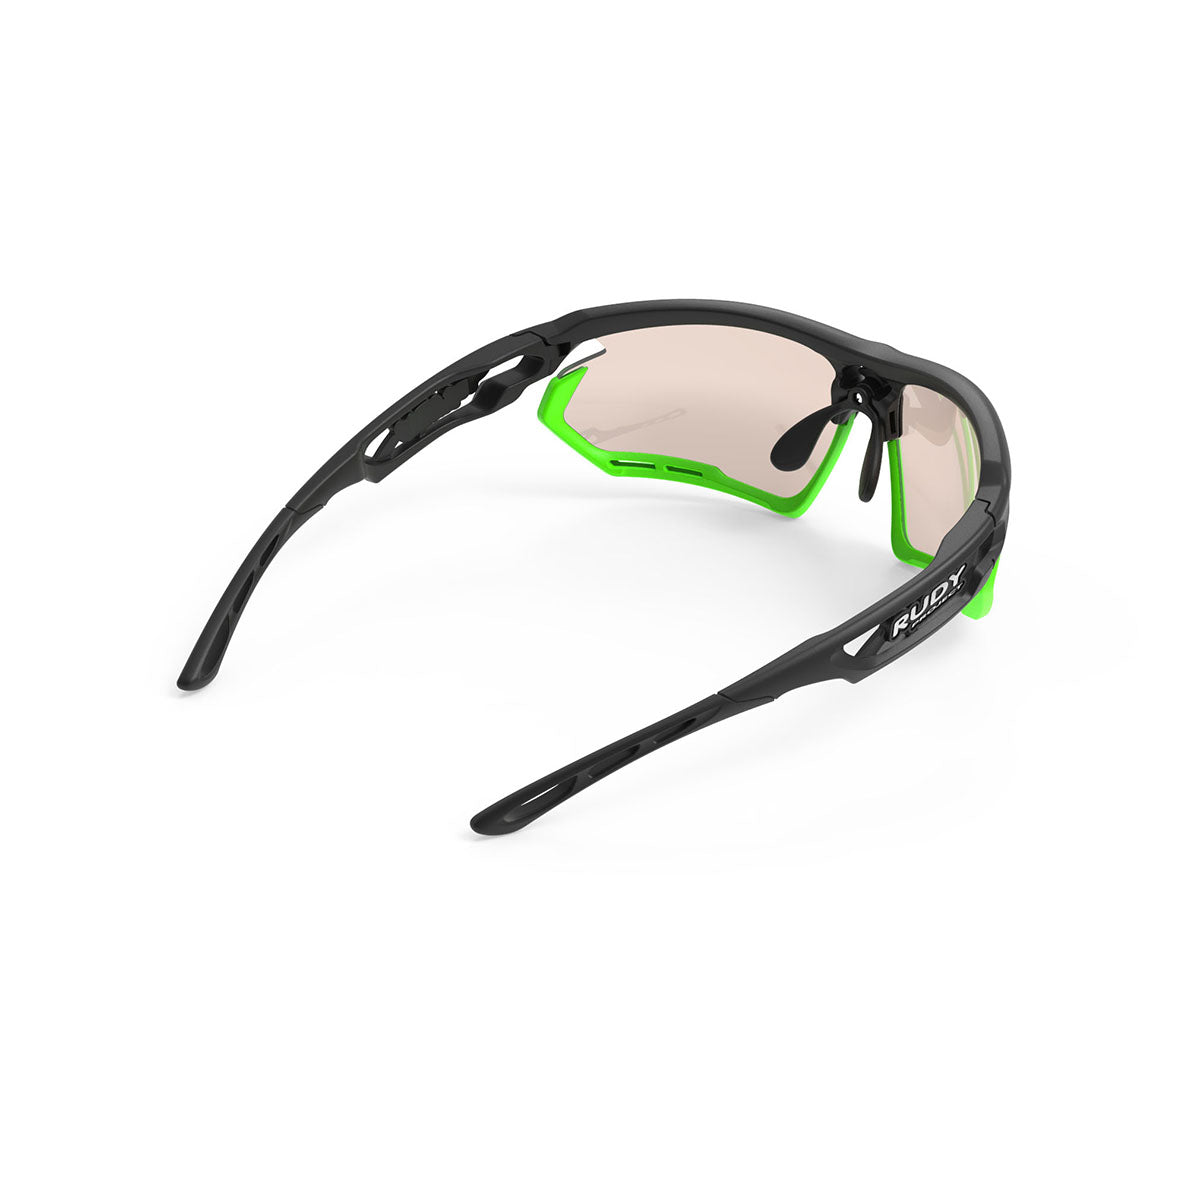 Rudy Project - Fotonyk - frame color: Matte Black - lens color: ImpactX-2 Photochromic Clear to Laser Brown - Bumper Color: Lime - photo angle: Top Back Angle Variant Hover Image